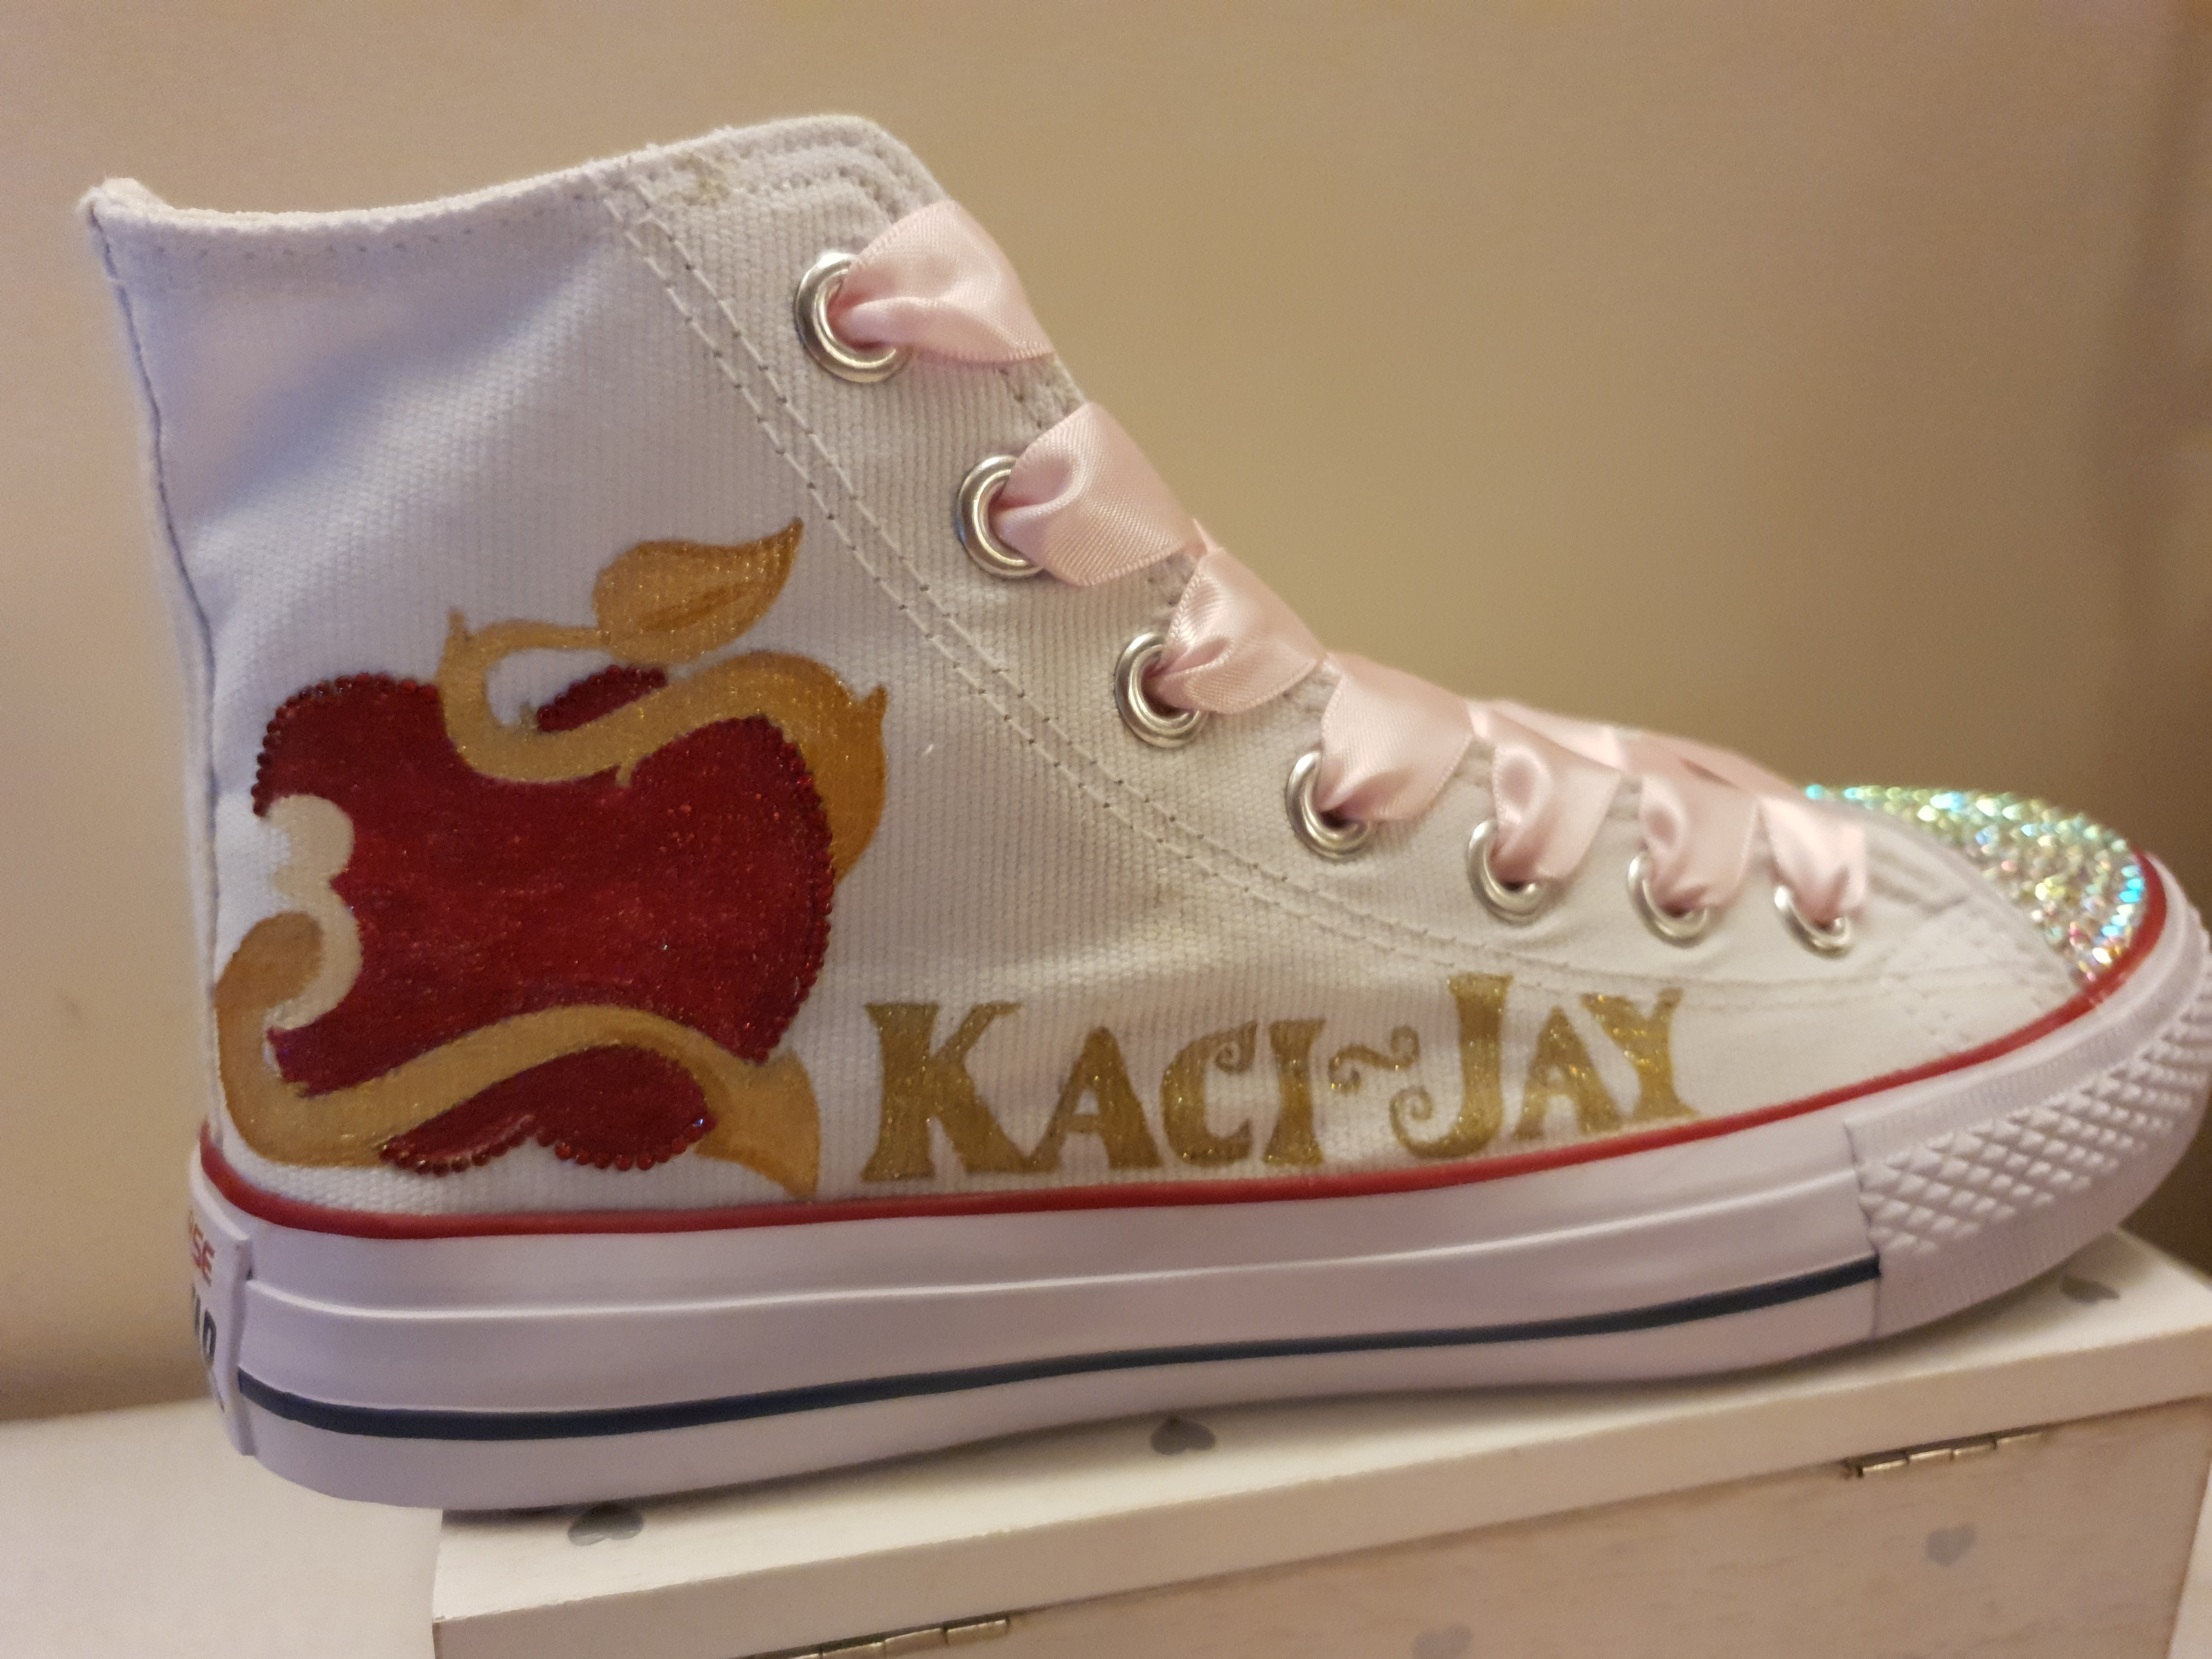 Converse HighTop Kaci Jay